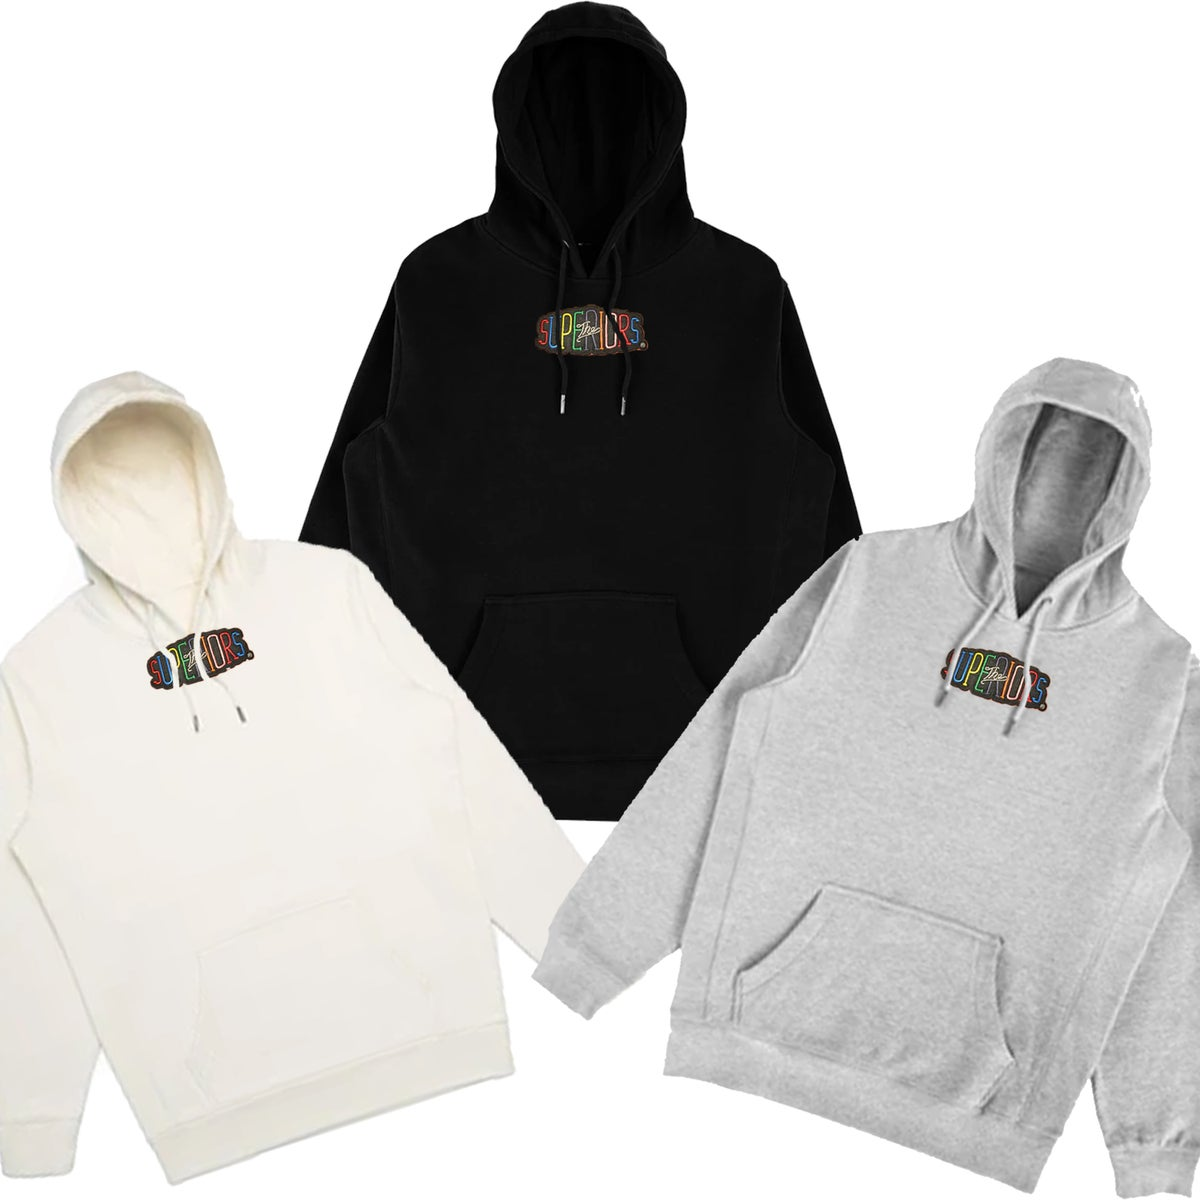 Image of Cozy Collection 002.0